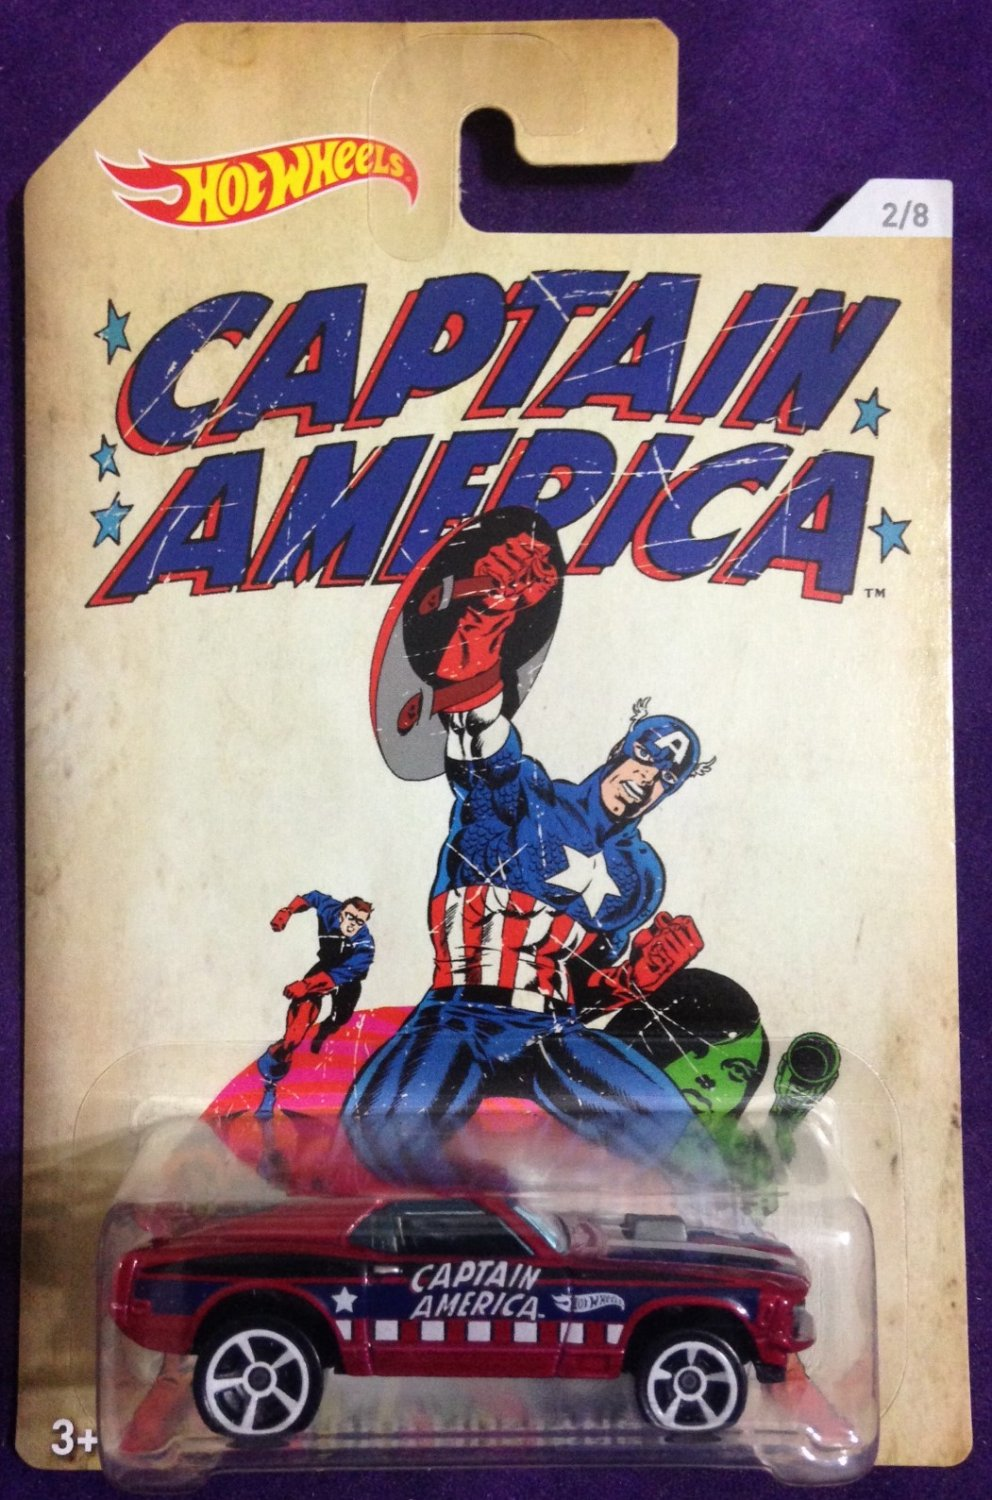 2016 Hot Wheels Captain America #2 70 Ford Mustang Mach 1